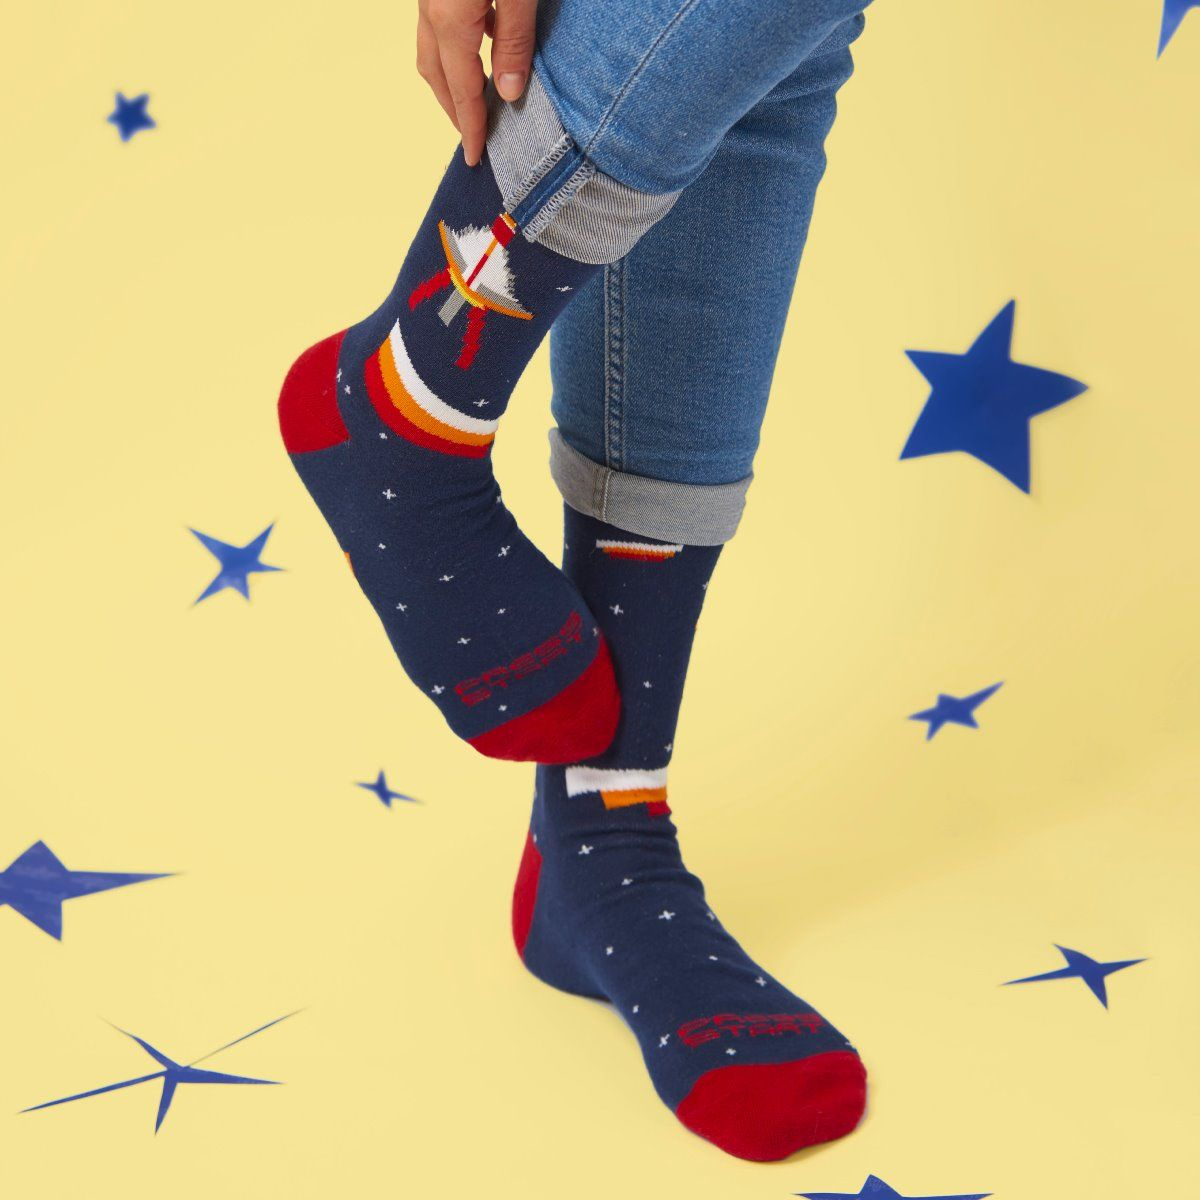 GAMES SOCKS ROCKET IN THE SPACE